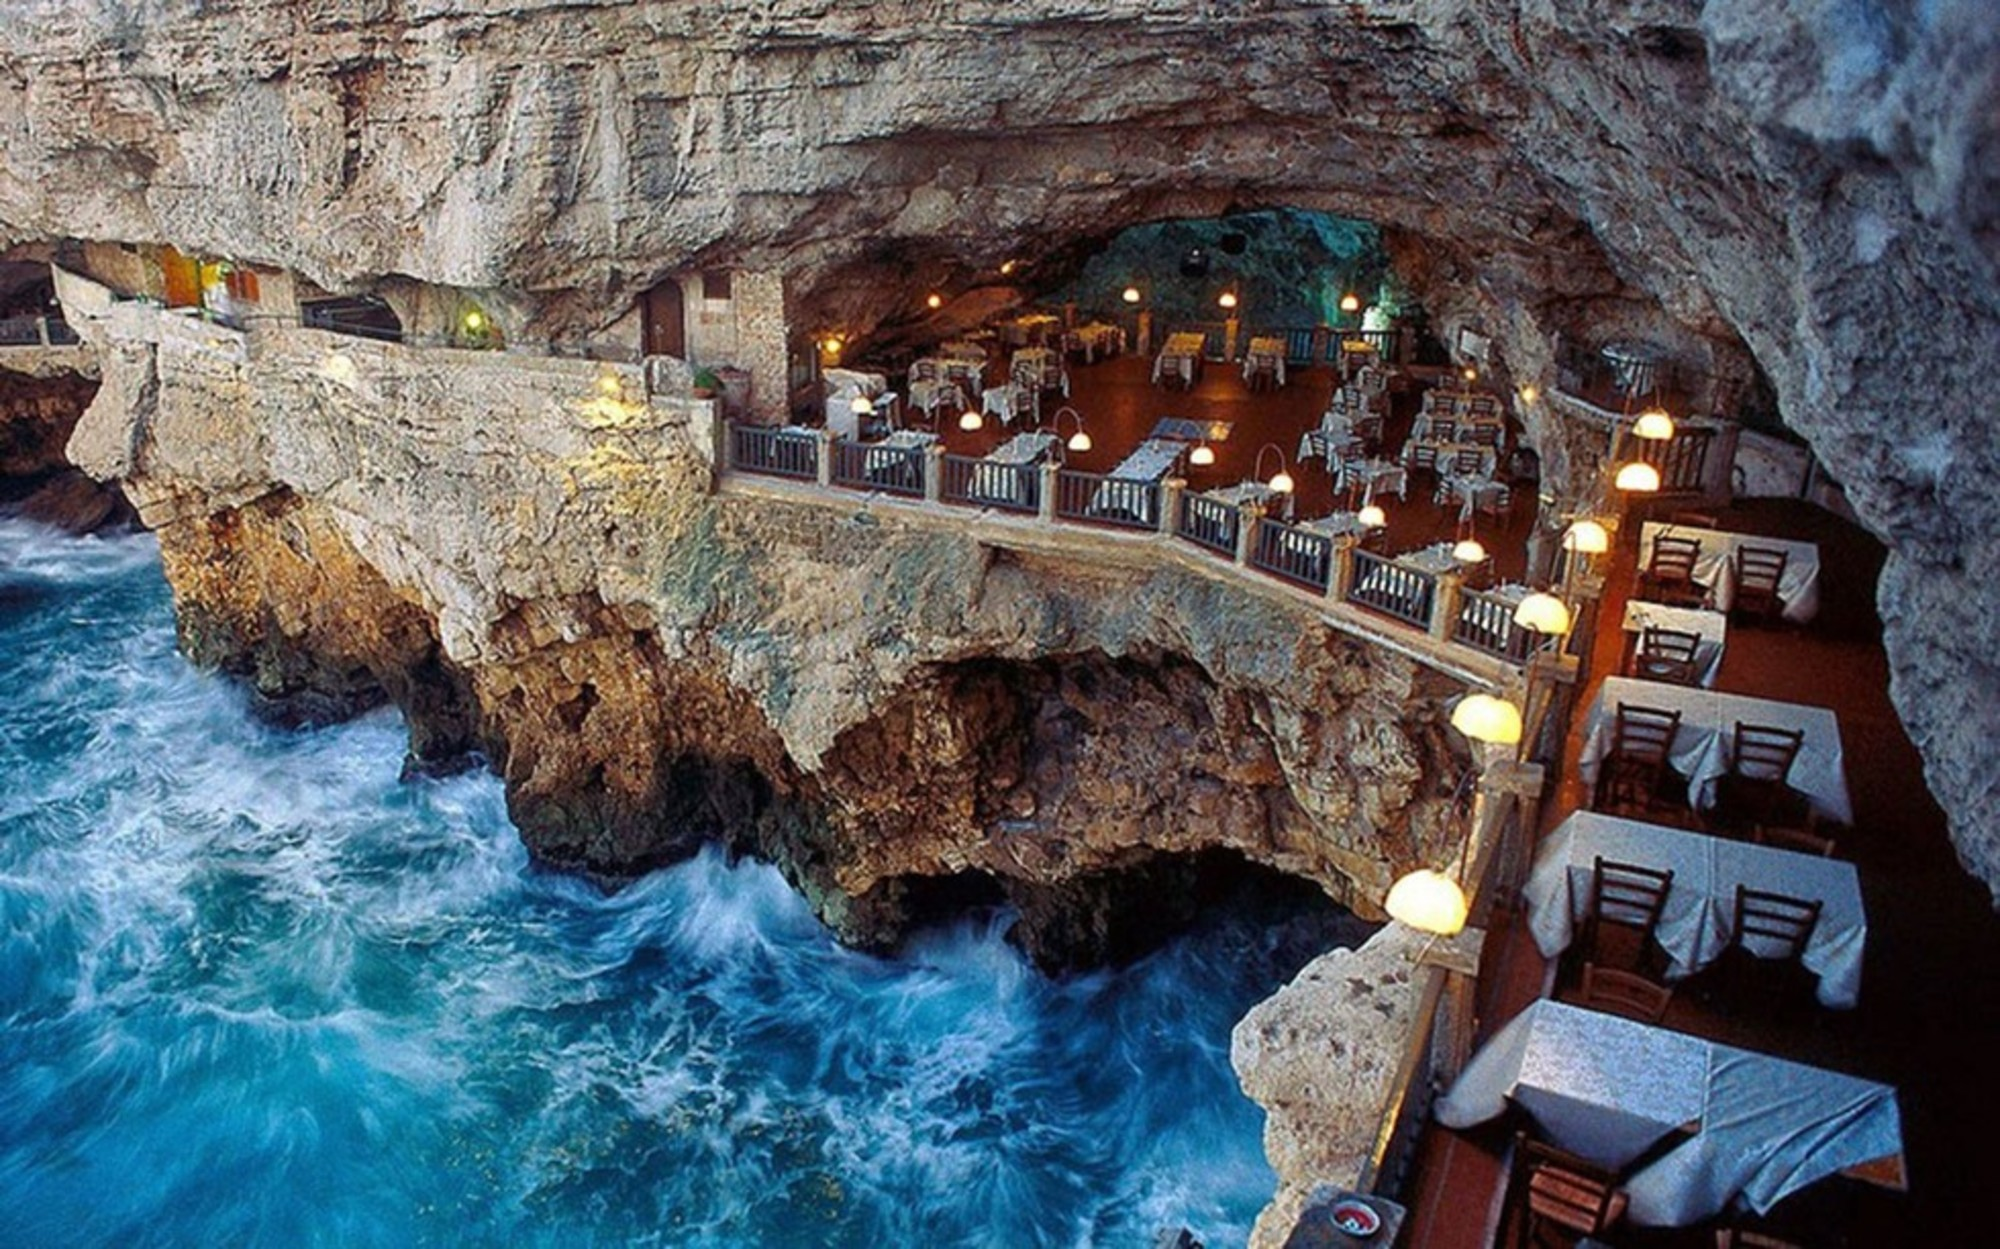 Luxury restaurants: an unforgettable experience inside a cave london Beautiful Hotels to stay in London Luxury restaurants an unforgettable experience inside a cave london Beautiful Hotels to stay in London Luxury restaurants an unforgettable experience inside a cave